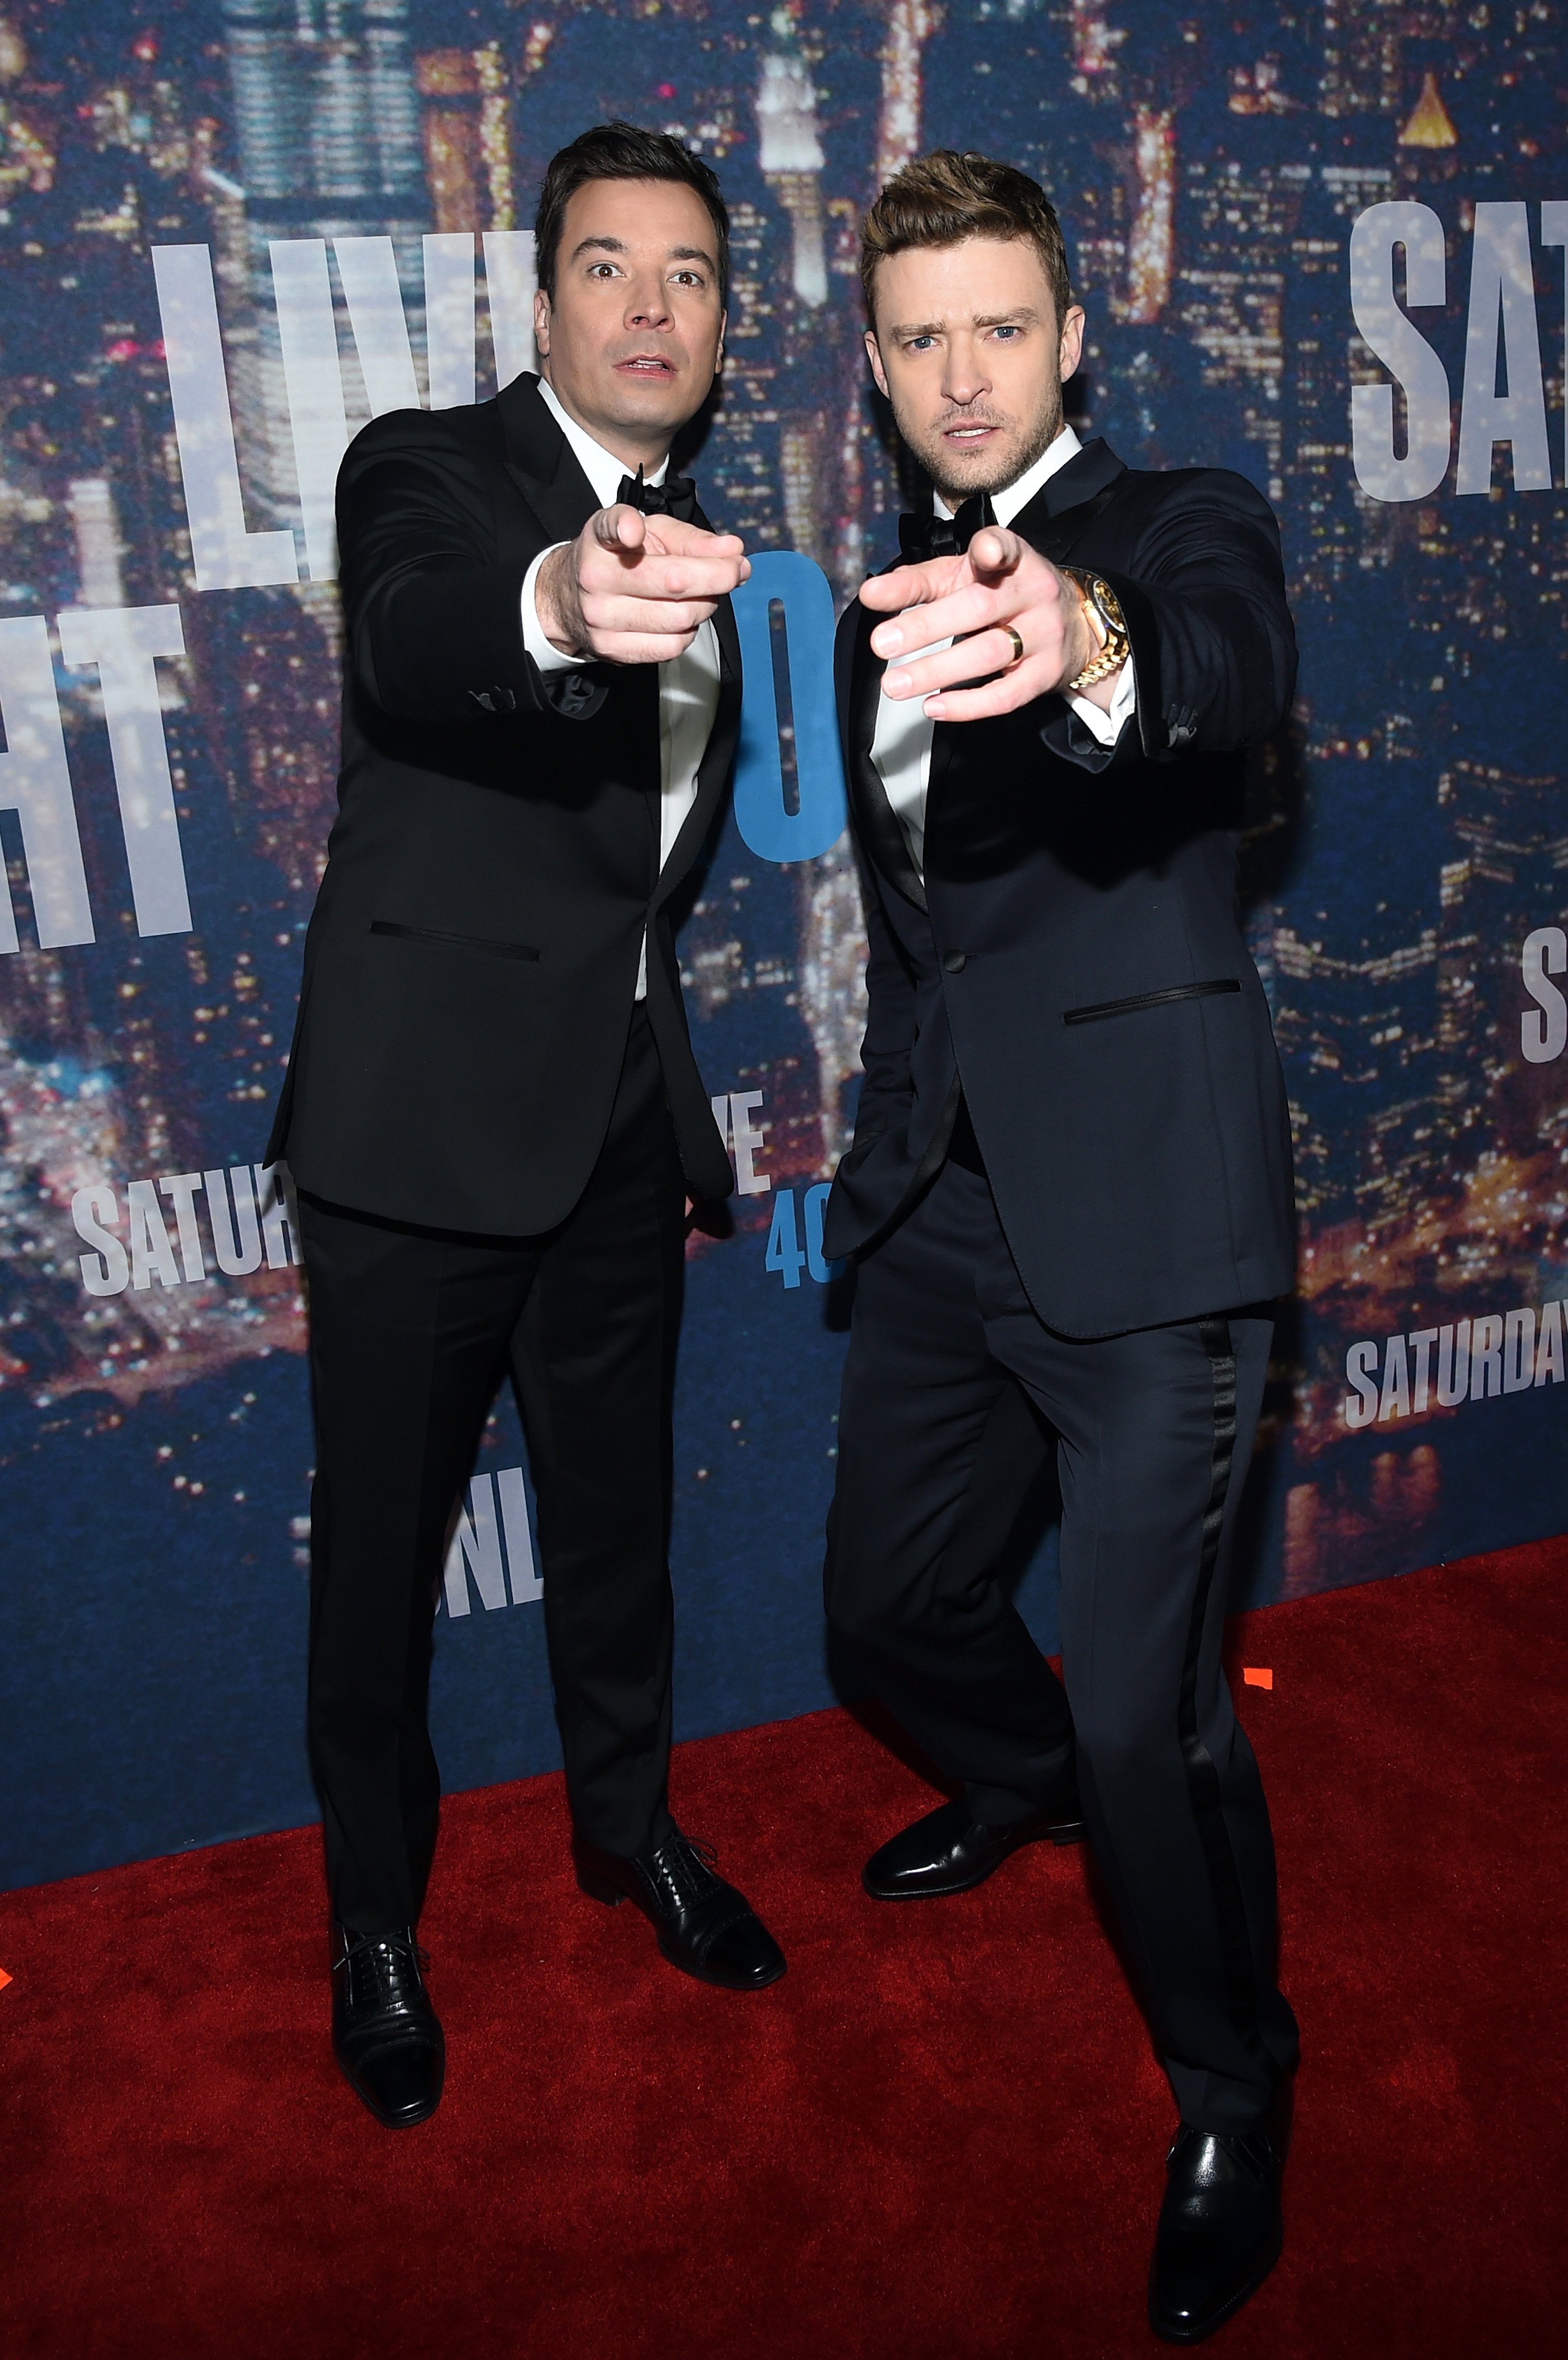 Jimmy Fallon (L) and Justin Timberlake attend SNL 40th Anniversary Celebration at Rockefeller Plaza on February 15, 2015 in New York City | Photo: Getty Images